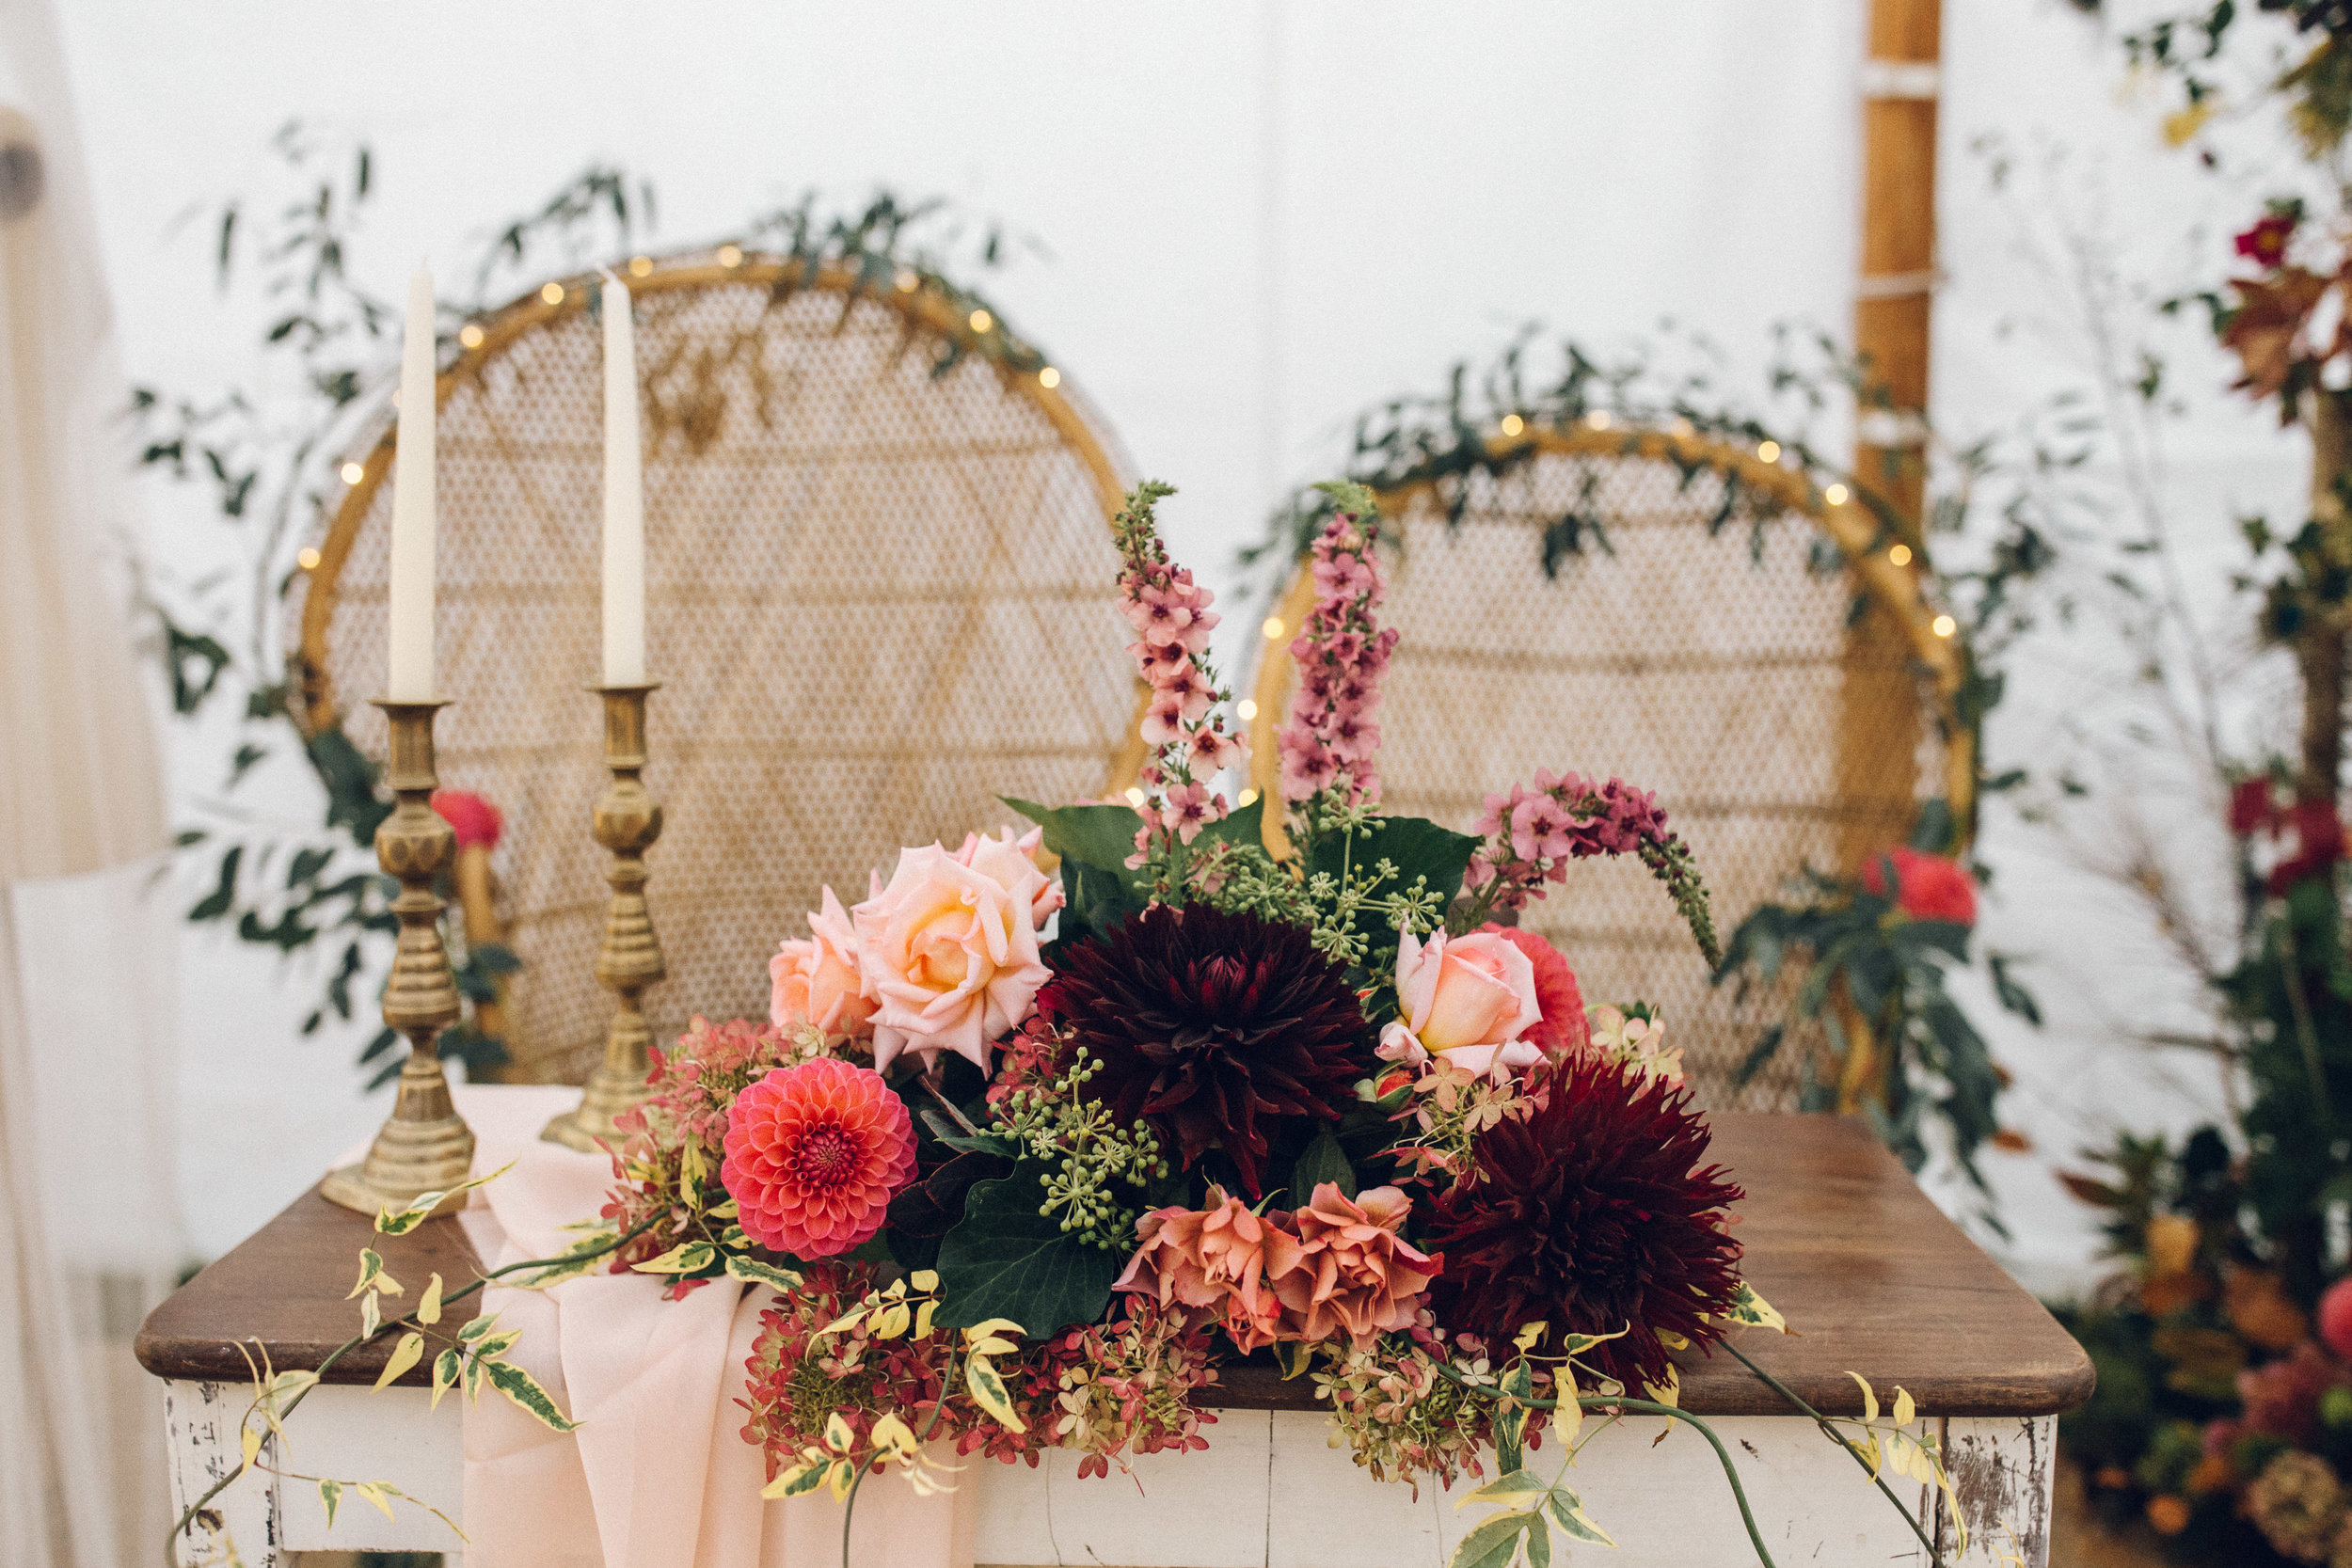 Suppliers: Furniture -   Brown Birds   // Flowers -   The Country Garden Flower Company